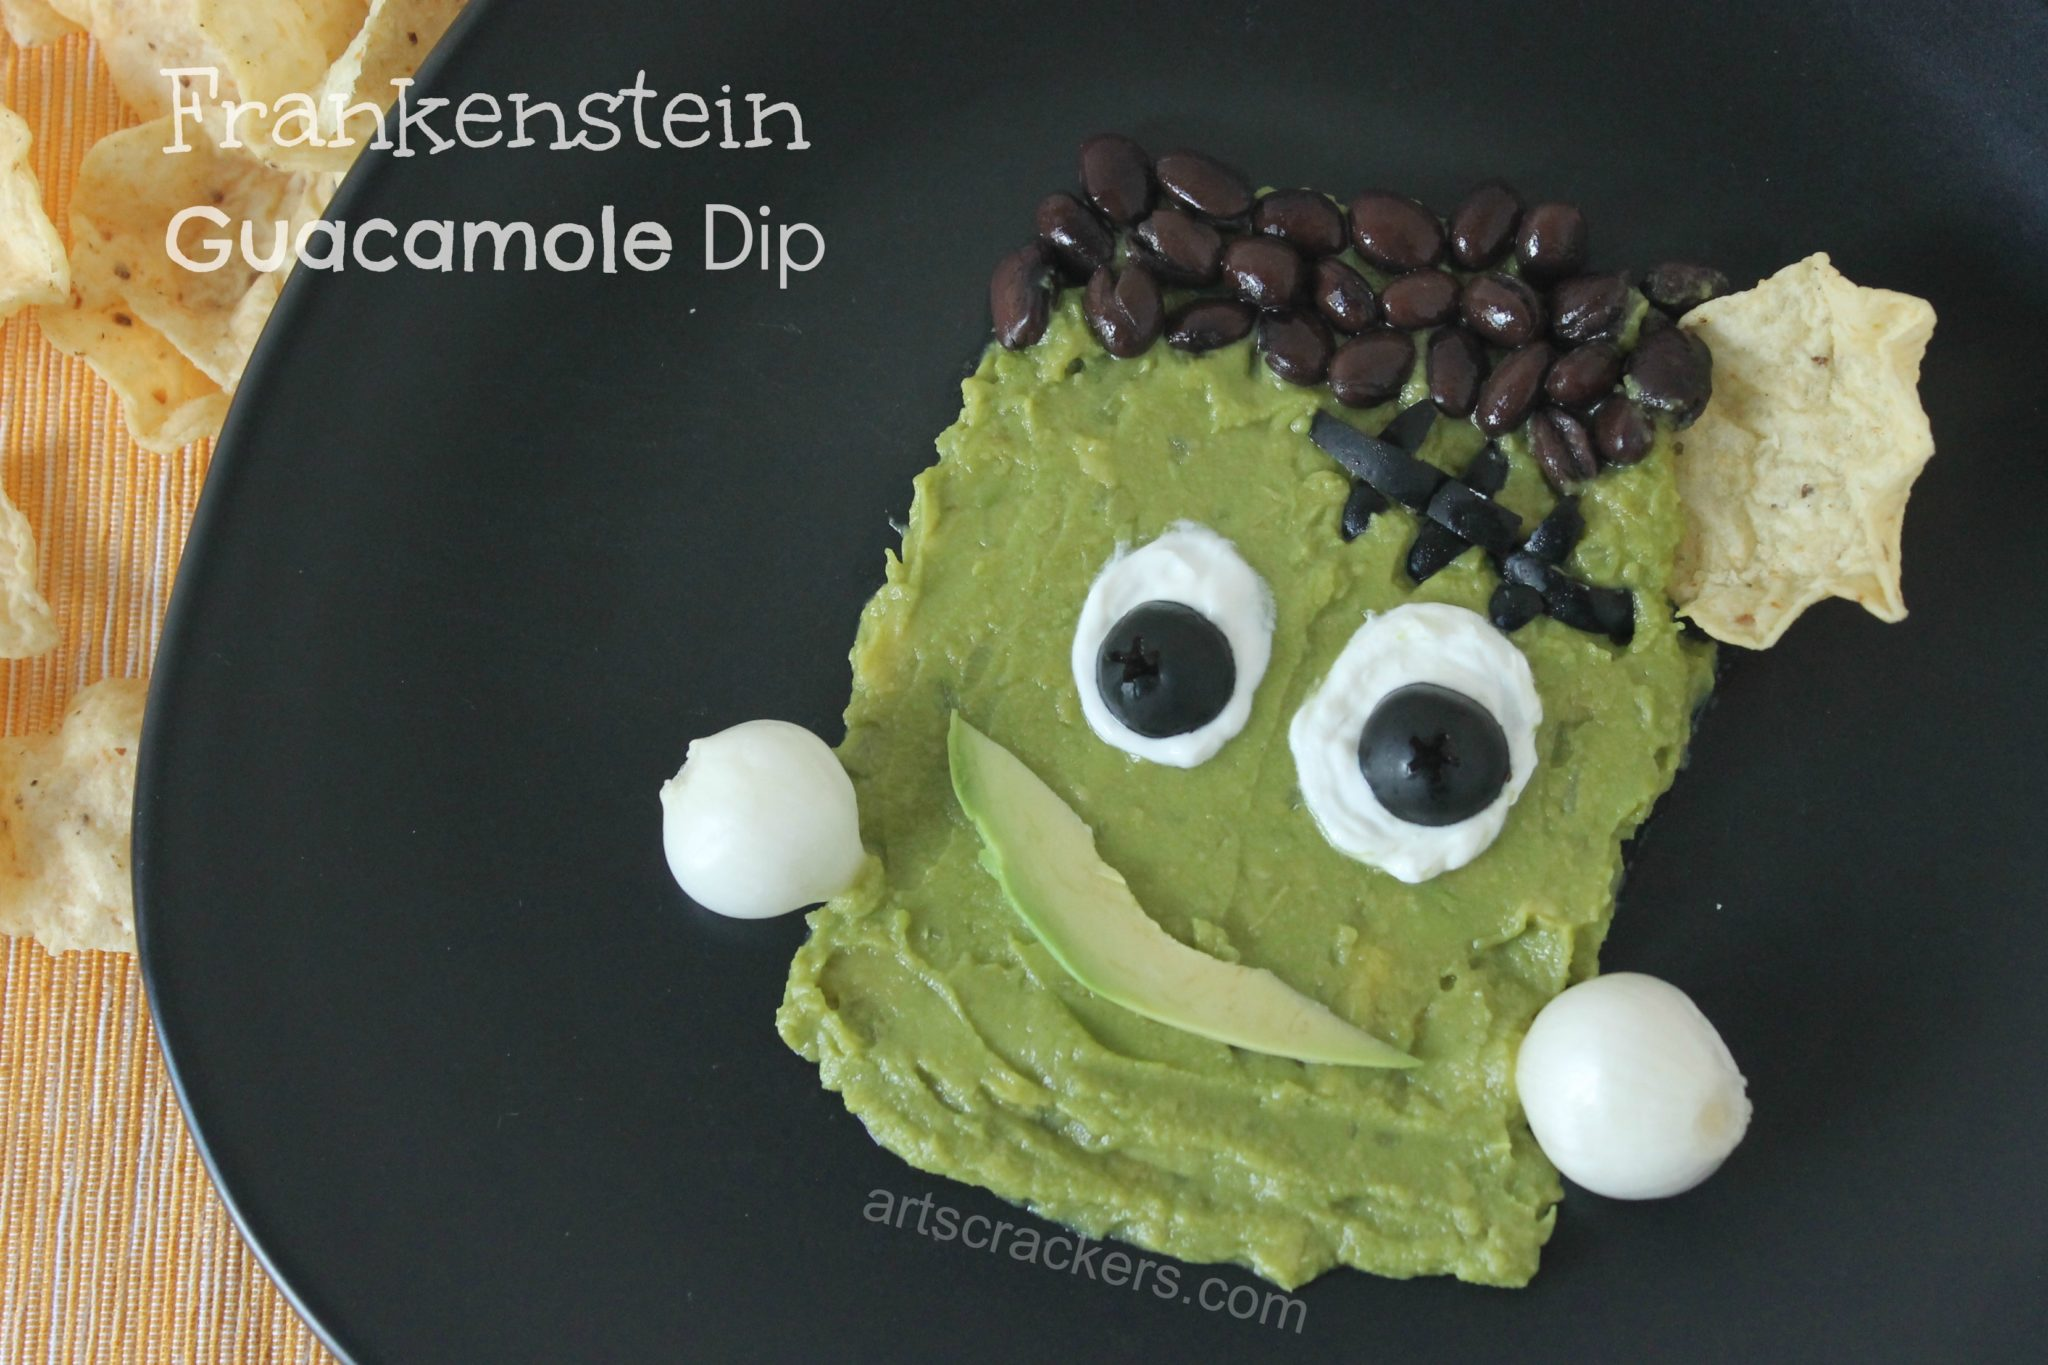 Frankenstein Guacamole Dip with Chip